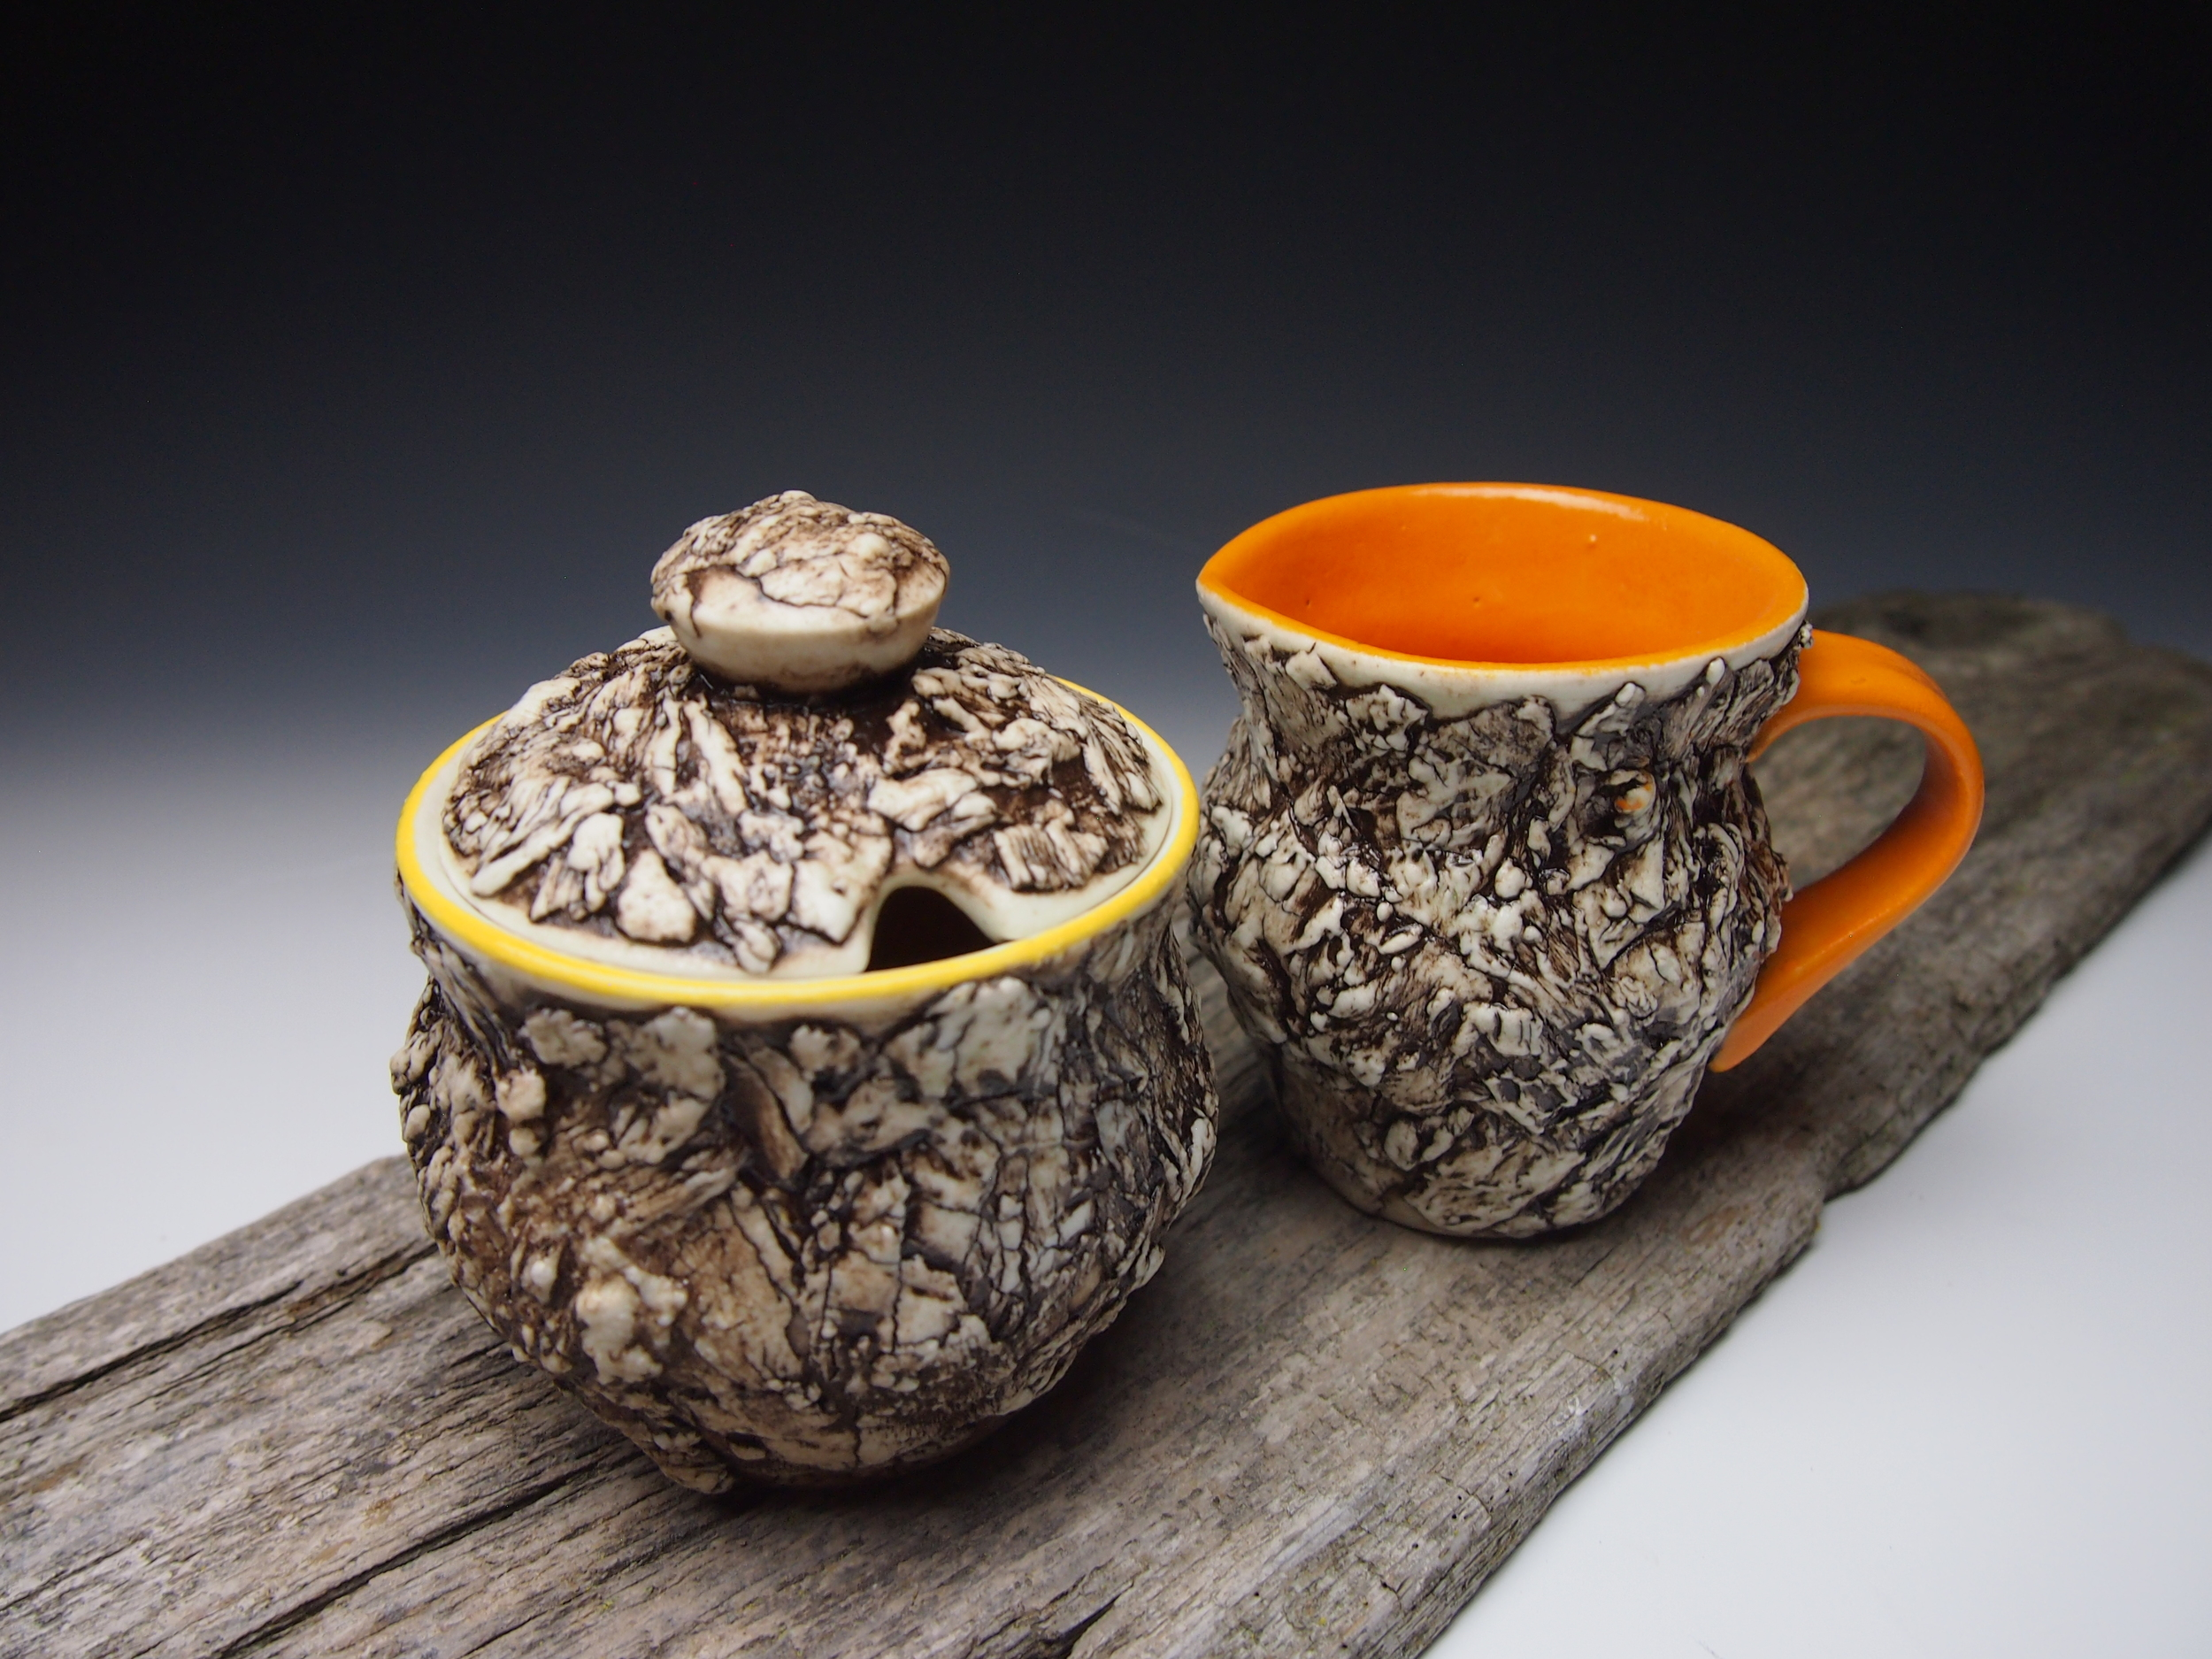 Yellow Bark Honey Pot and Orange Bark Creamer